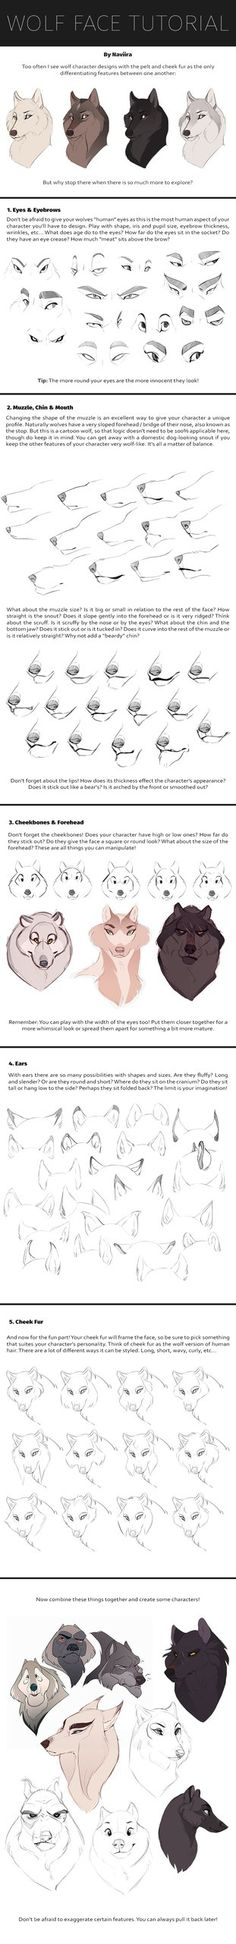 Wolf Face Tutorial by Naviira on DeviantArt